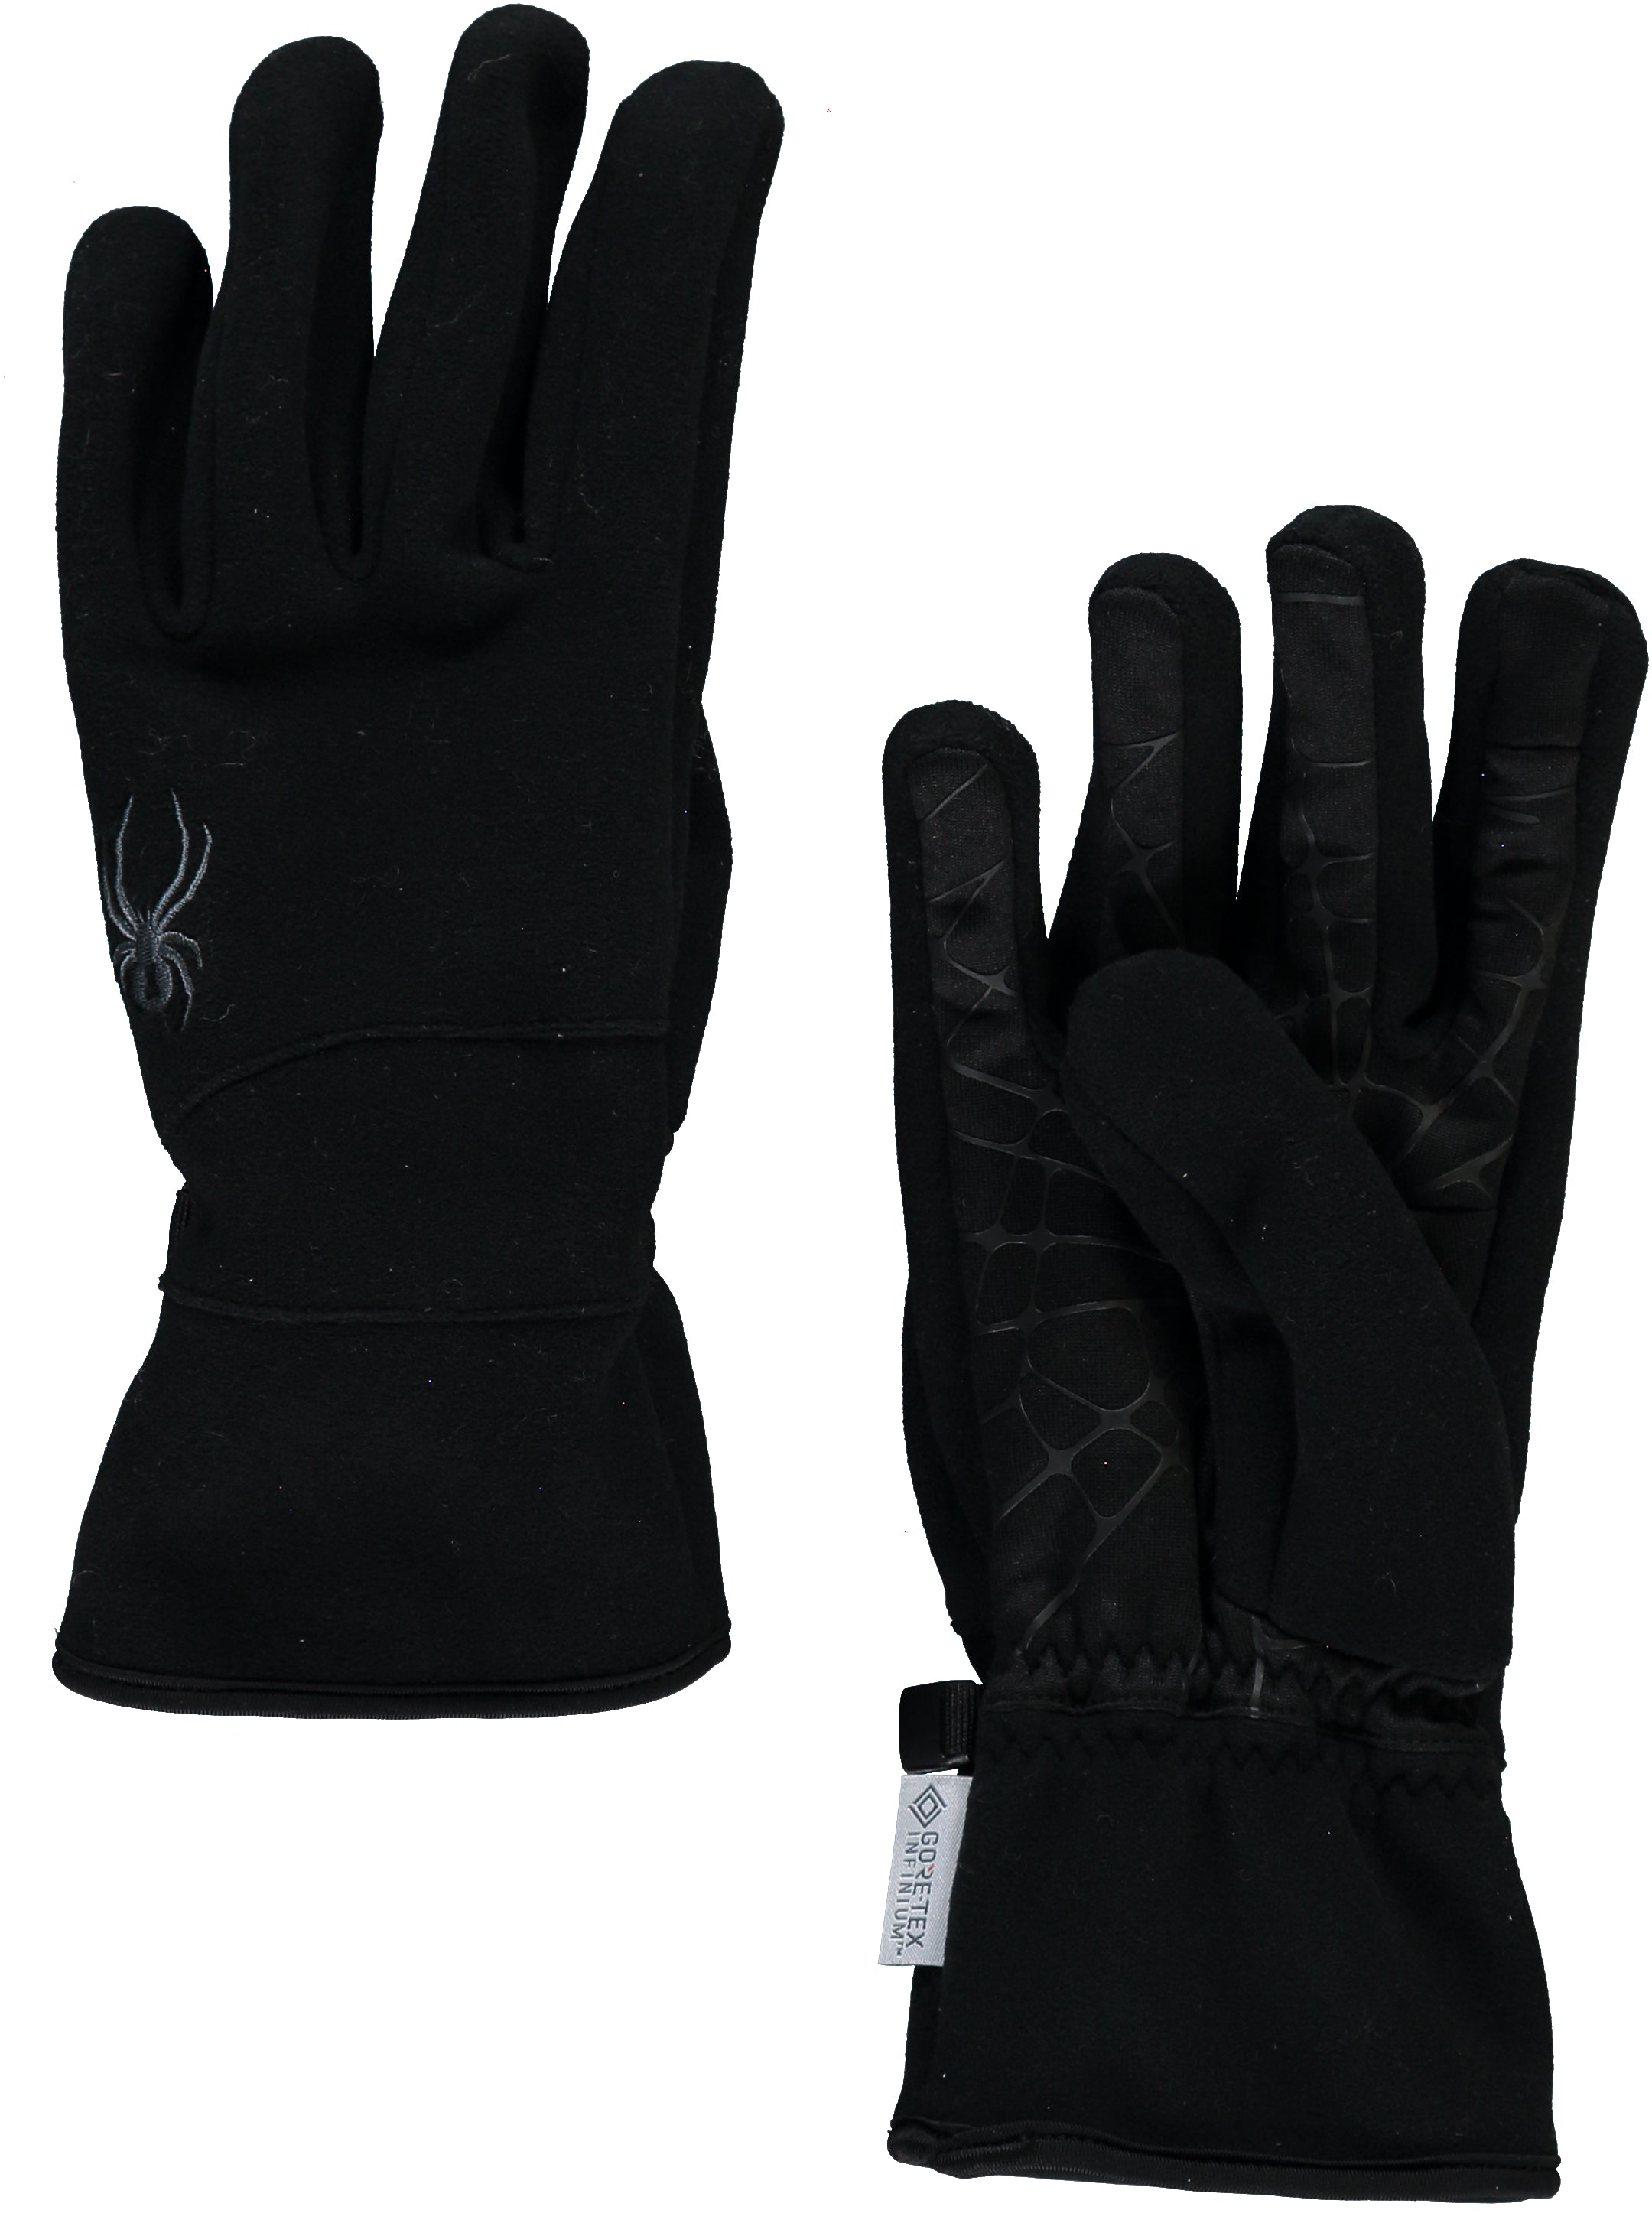 'Spyder' Men's Wander Infinium Fleece Gloves - Black